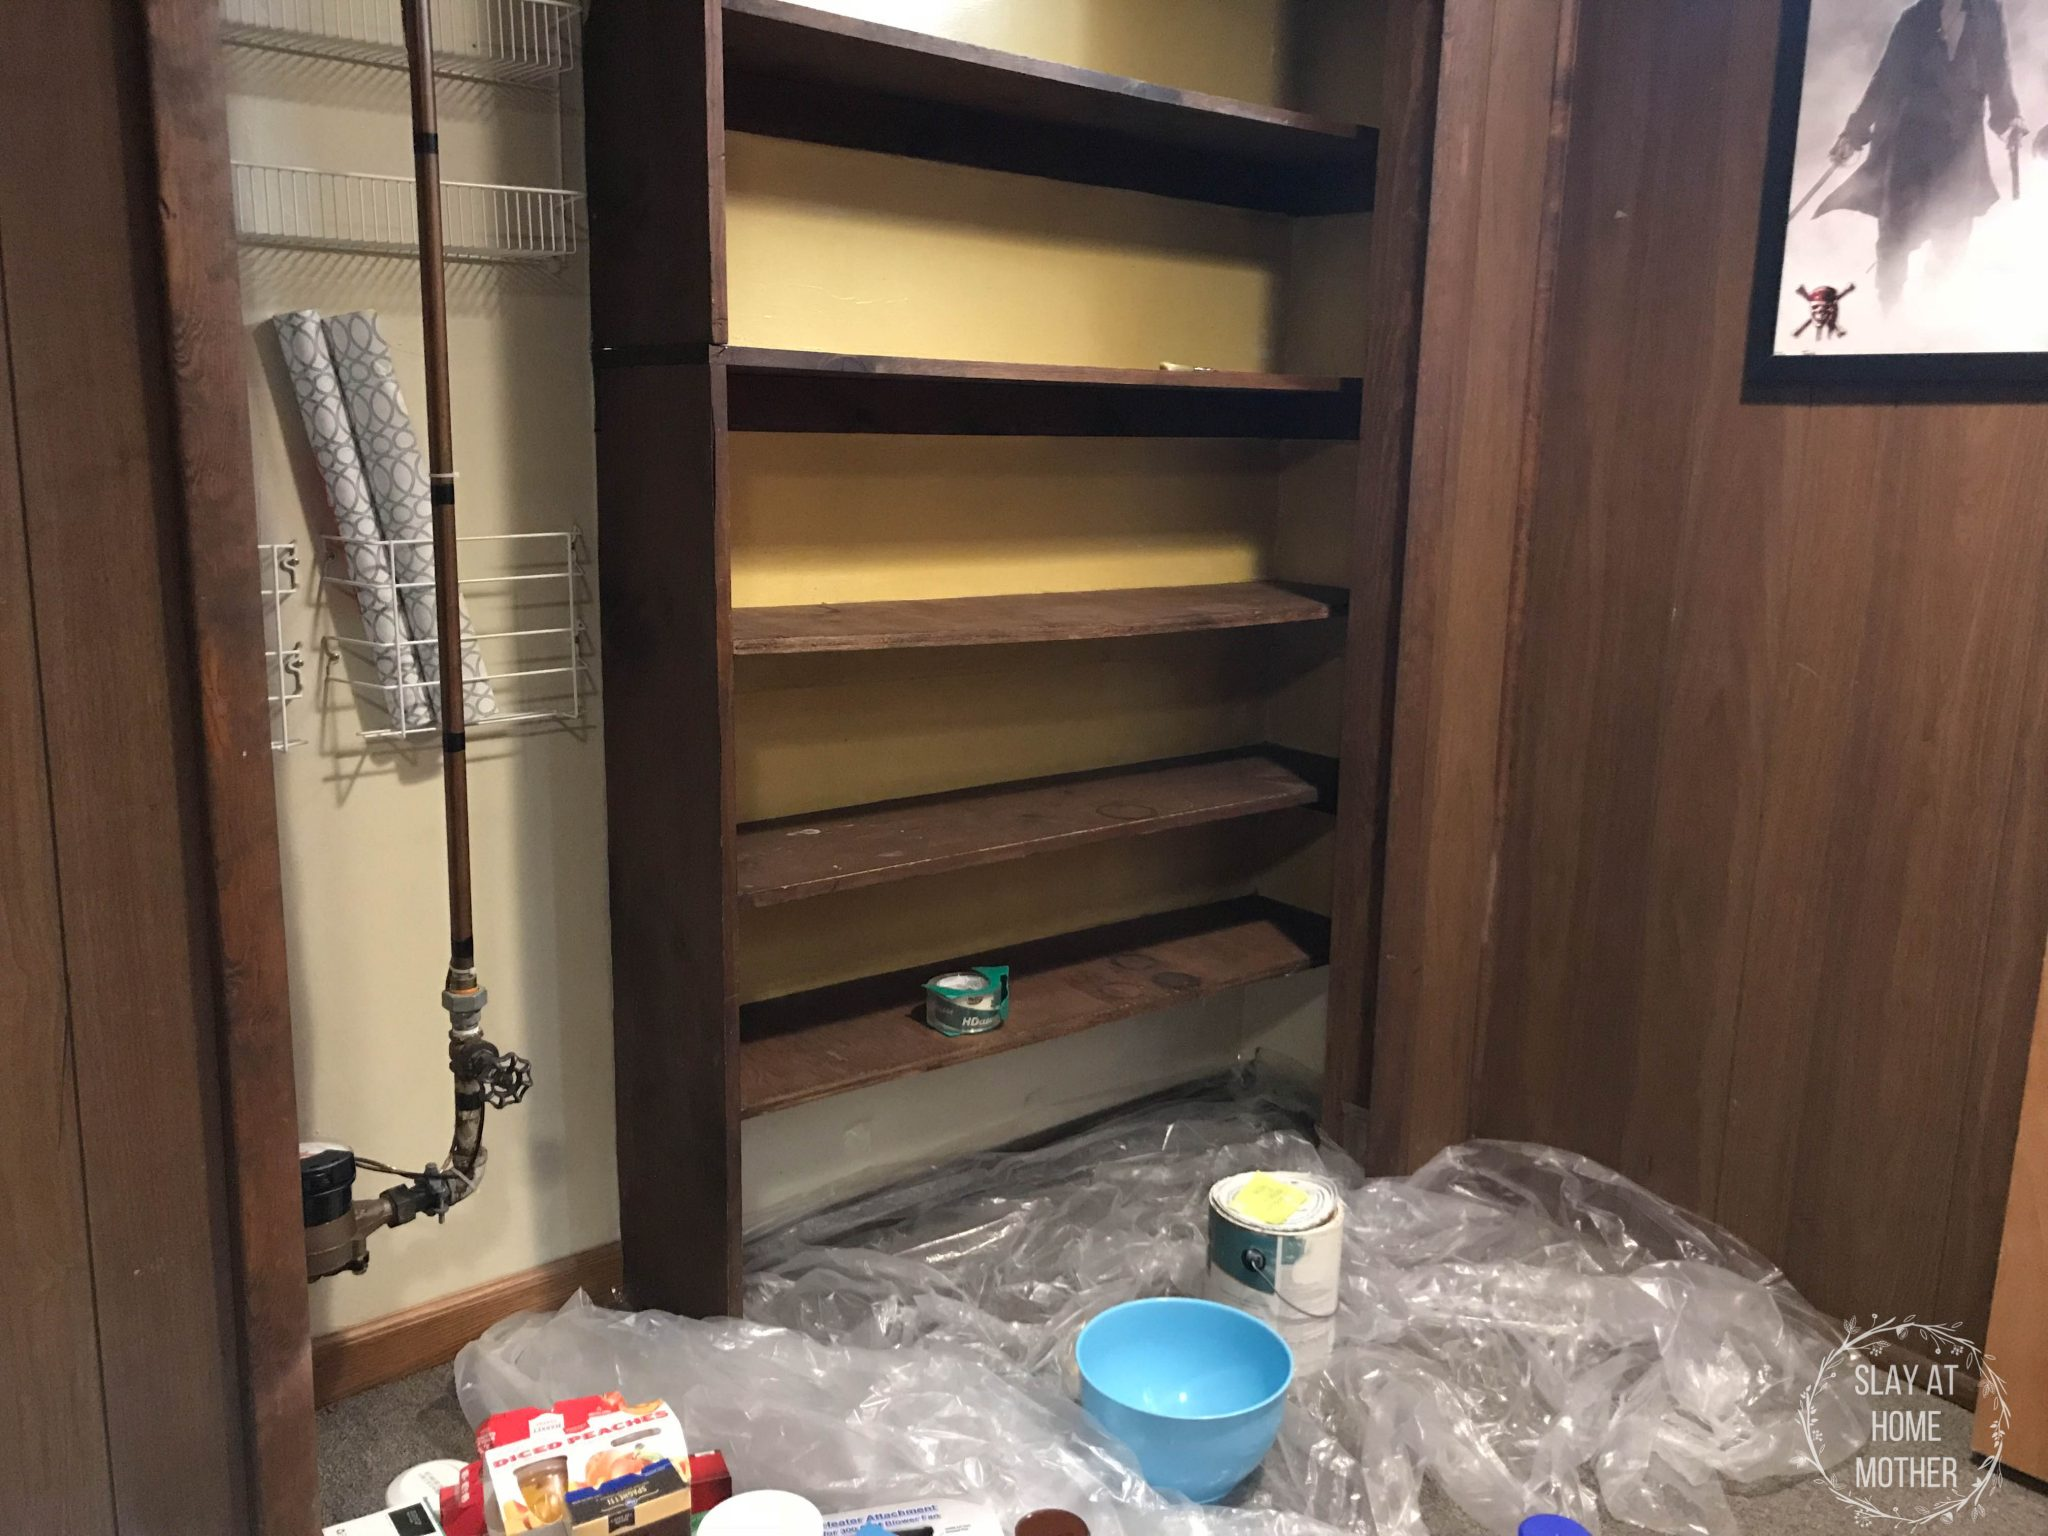 Cleared shelves in my pantry, plastic covering the carpeted basement floor